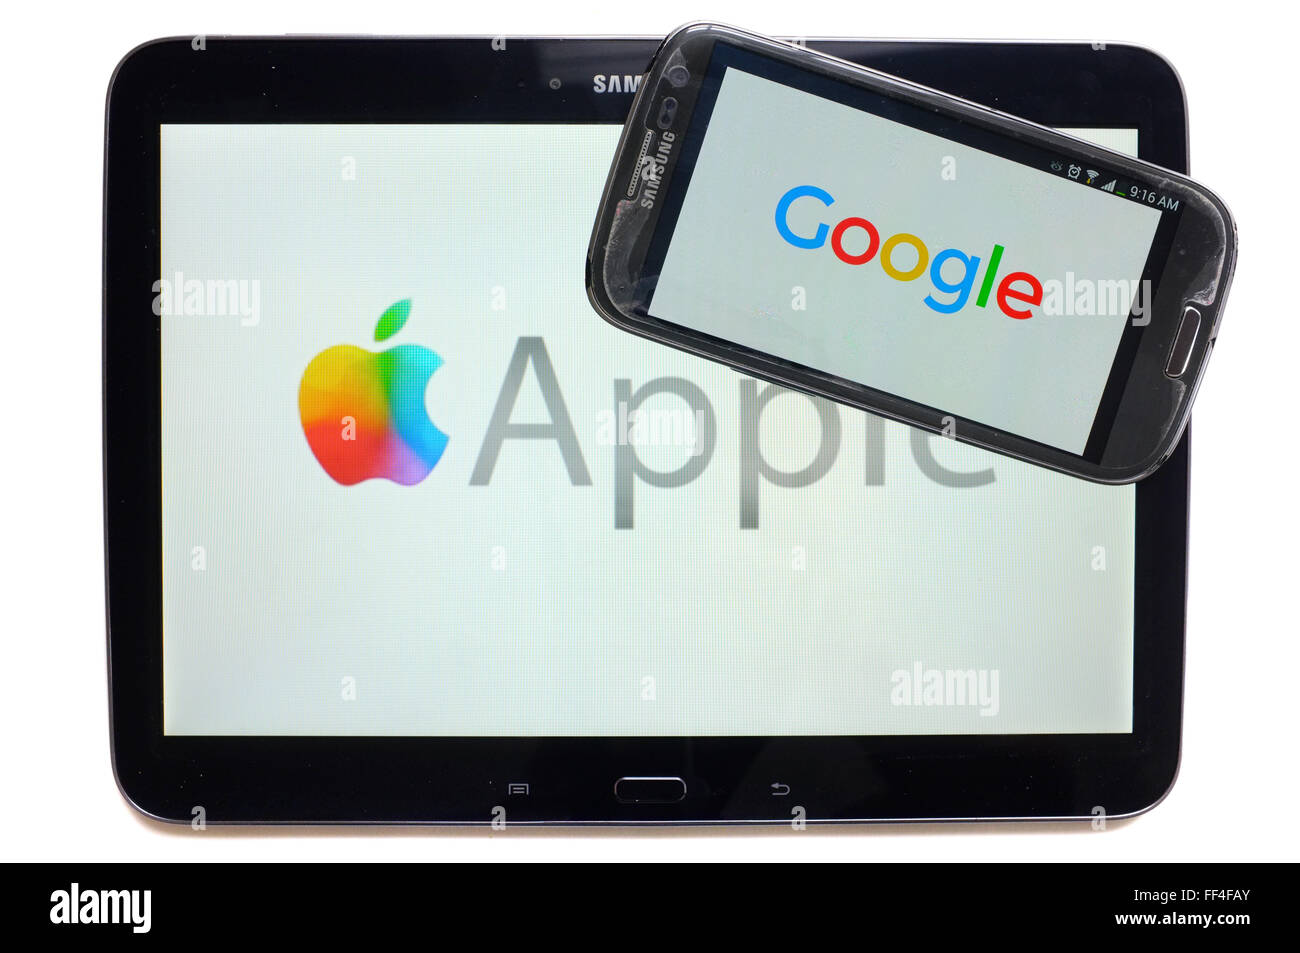 The Google logo on a smartphone and Apple on a tablet photographed against a white background. - Stock Image